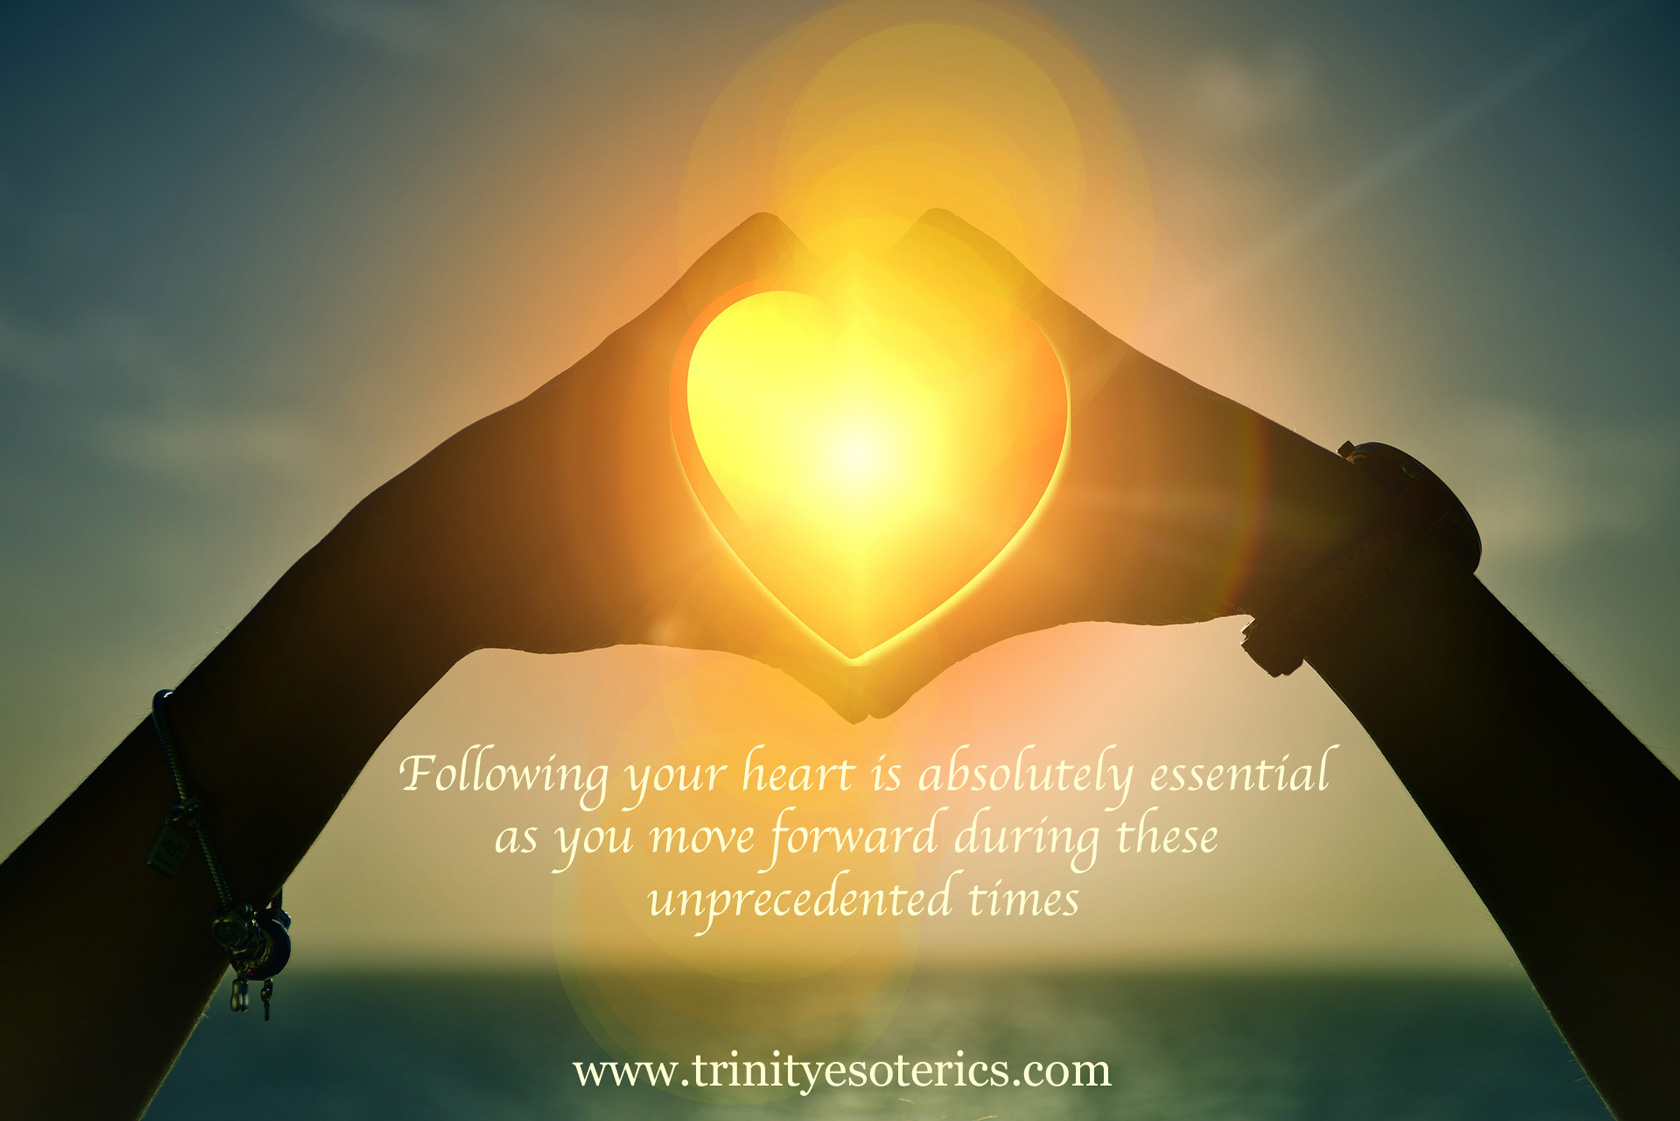 glowing golden heart light trinity esoterics